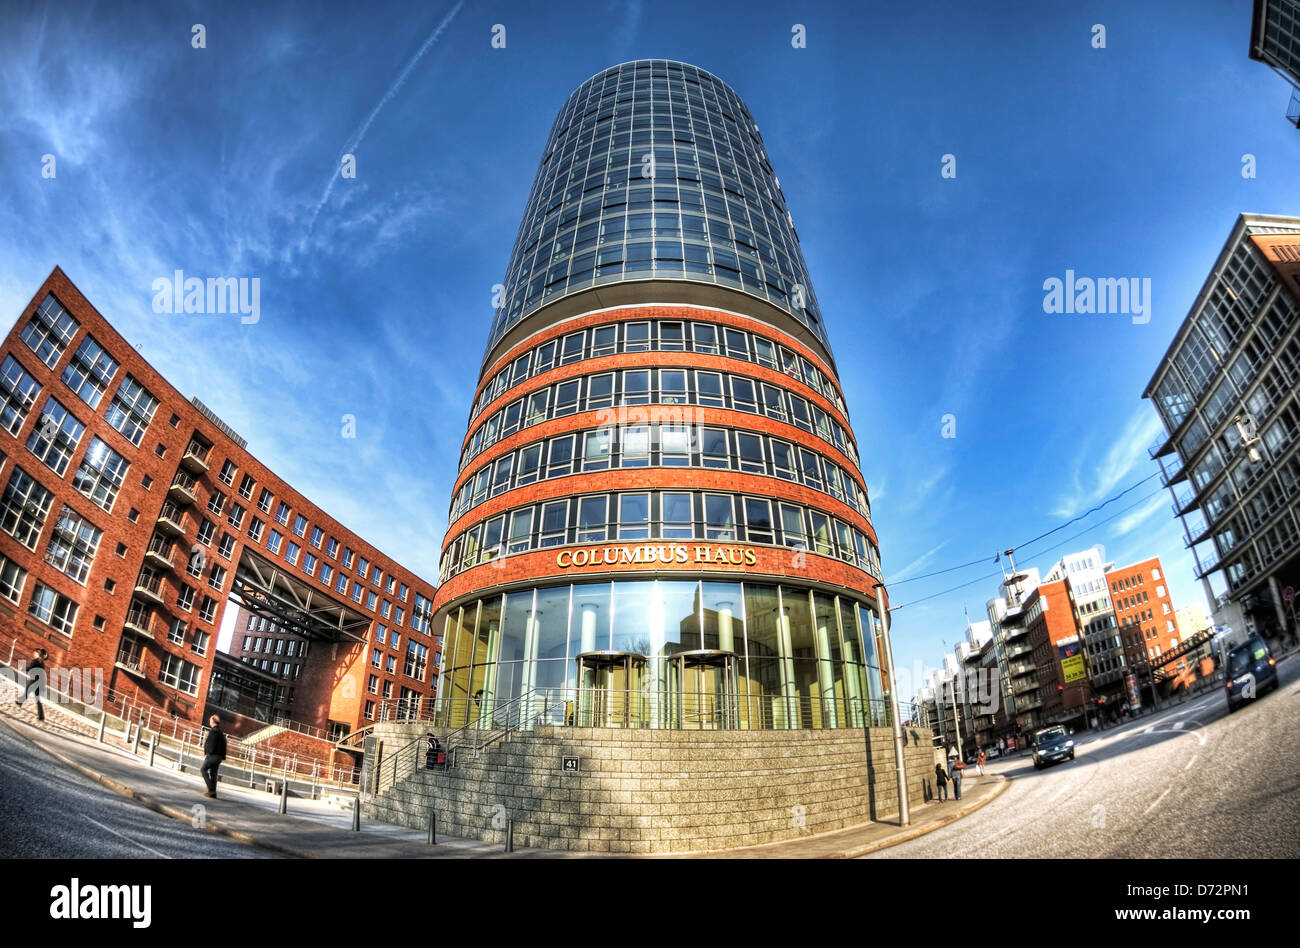 Columbus house on the edge of the memory town in Hamburg, Germany, Europe - Stock Image